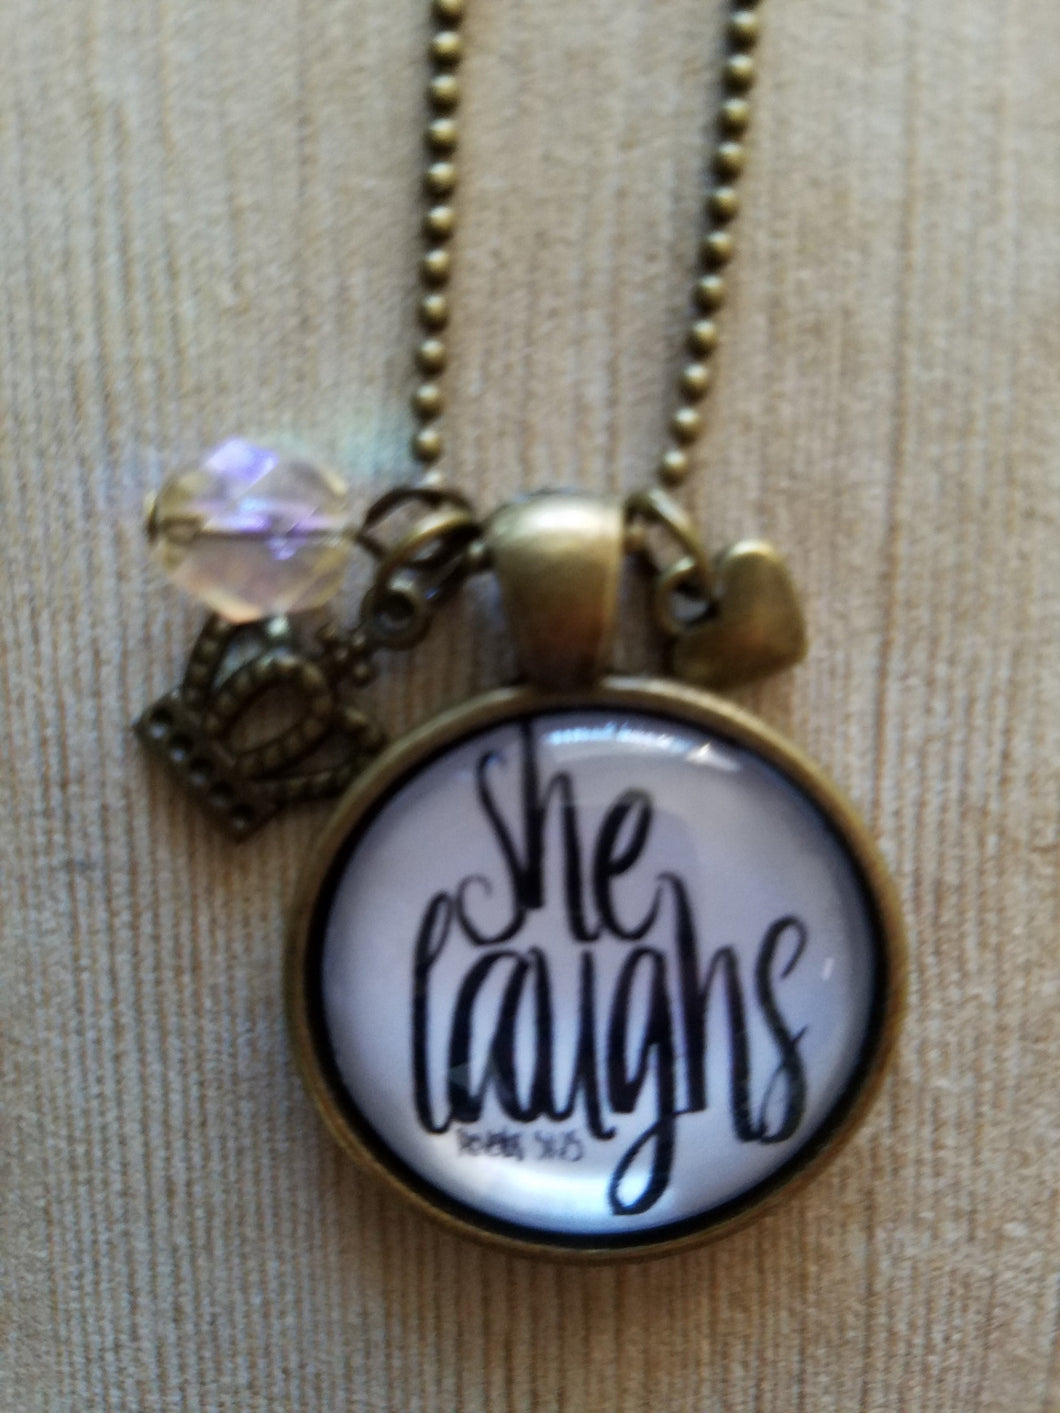 She Laughs - Proverbs 31:25 - 1